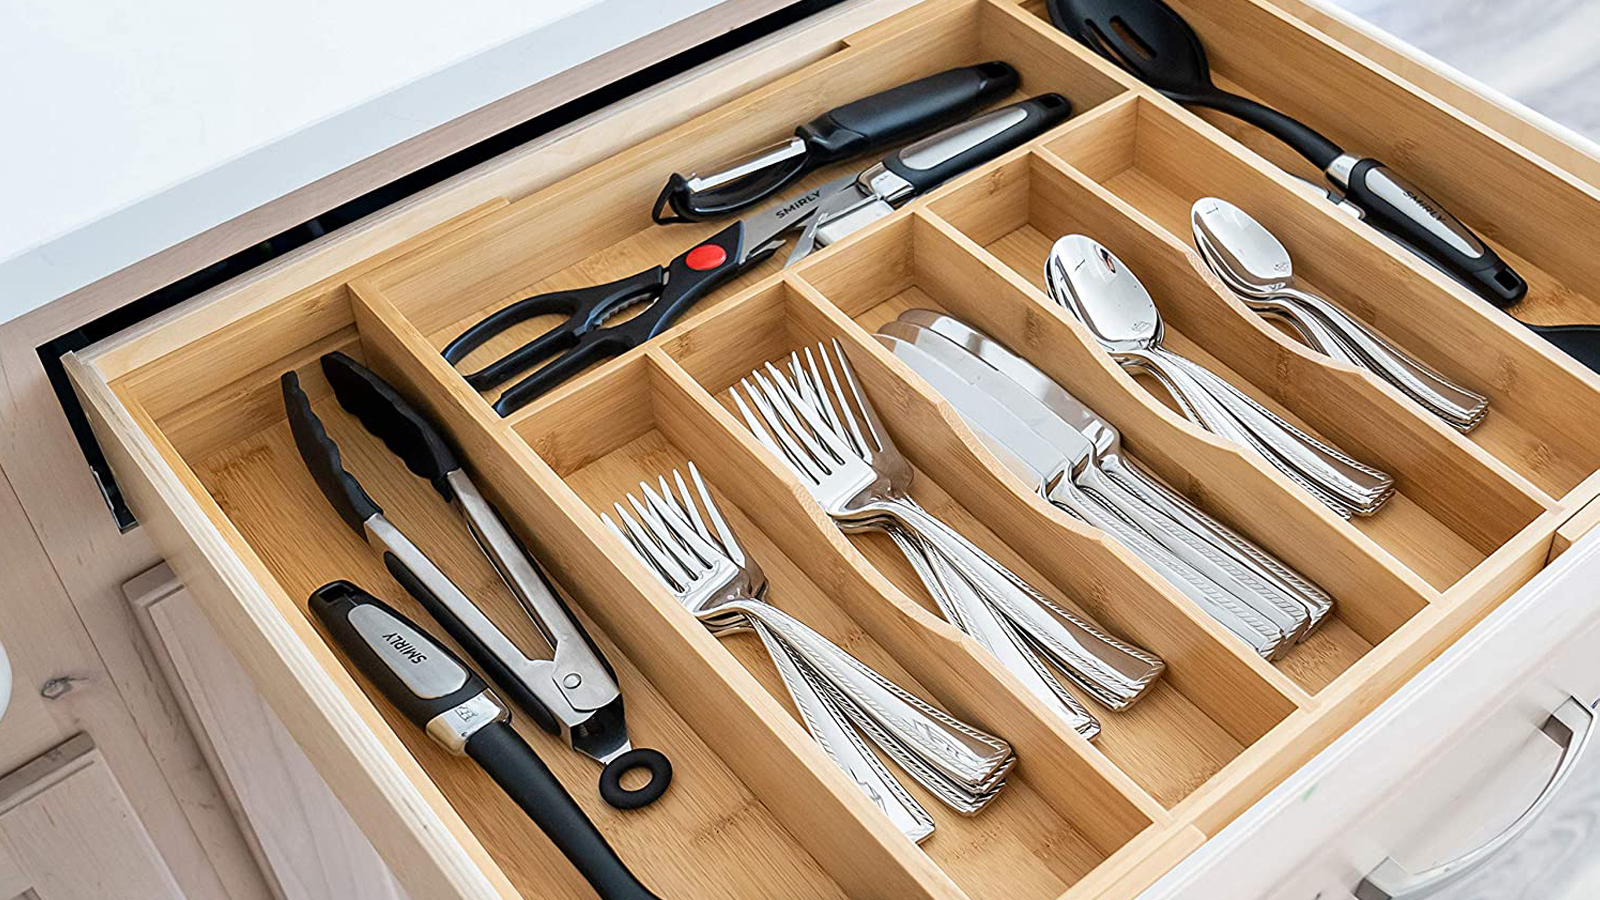 Keep Your Kitchen Utensils Where You Need Them with This Bamboo Organizer